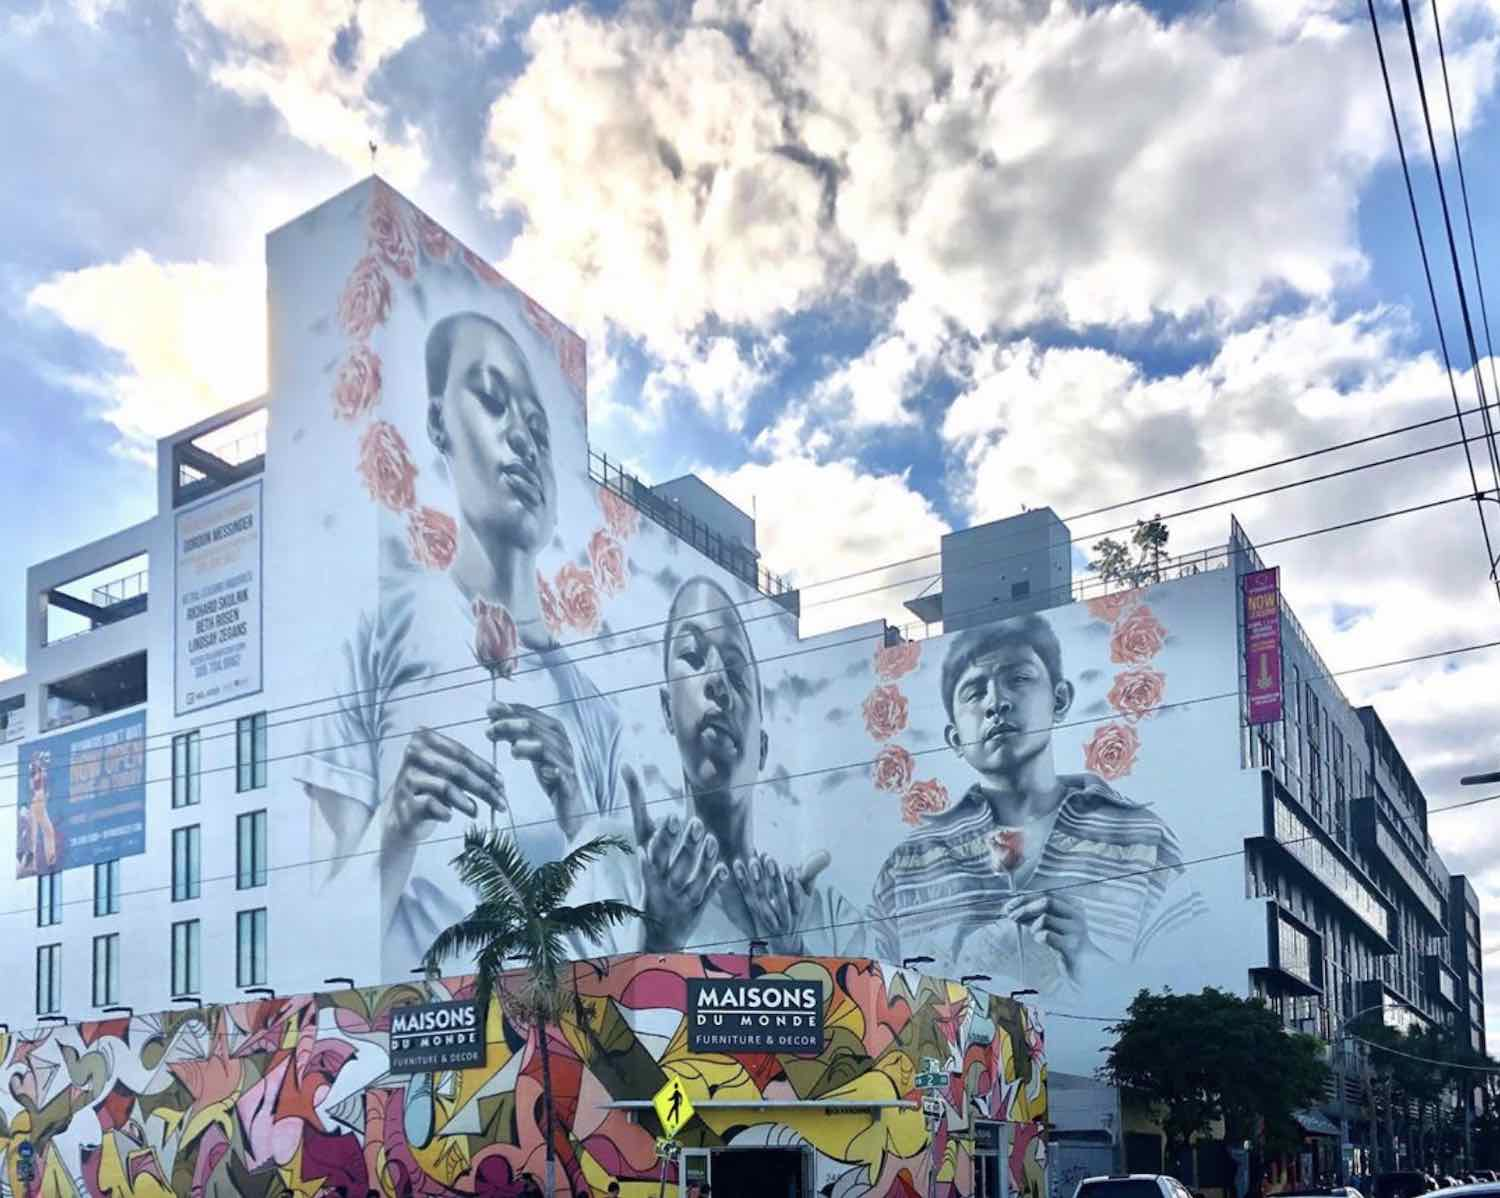 Street art in the Miami's Wynwood district - Phot via IG by @linktoart.